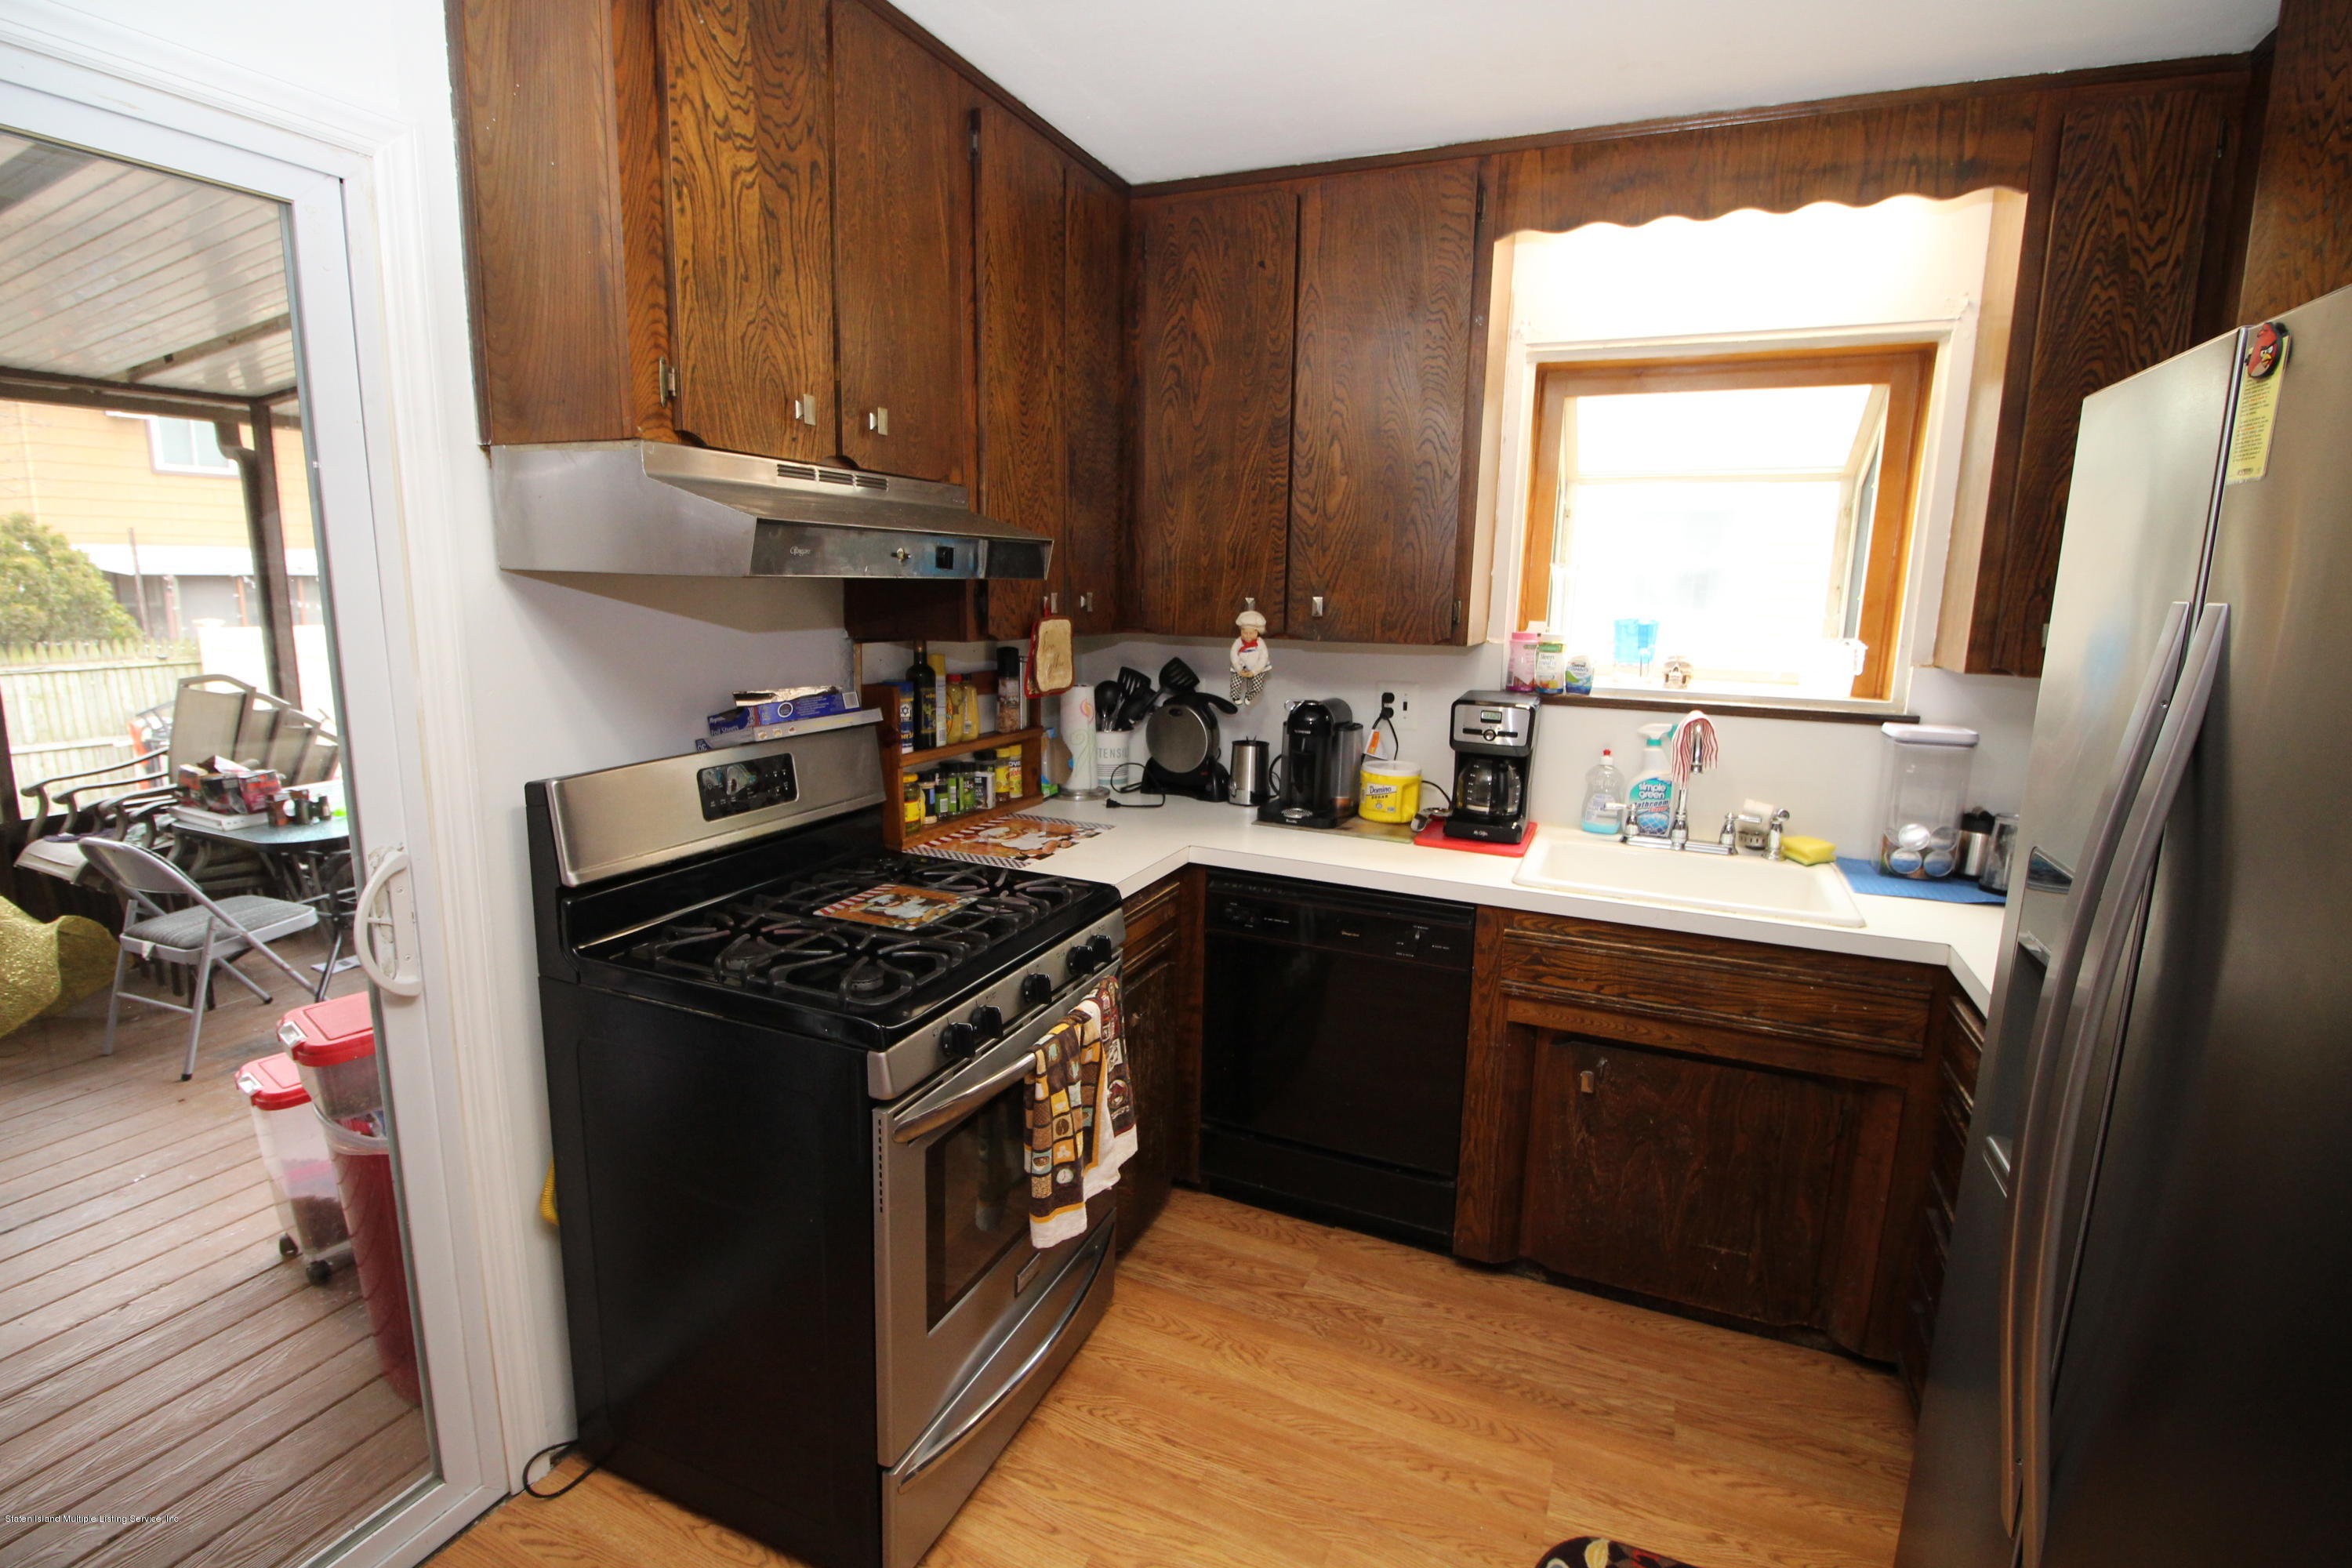 Single Family - Semi-Attached 48 Mulberry Avenue  Staten Island, NY 10314, MLS-1126171-9